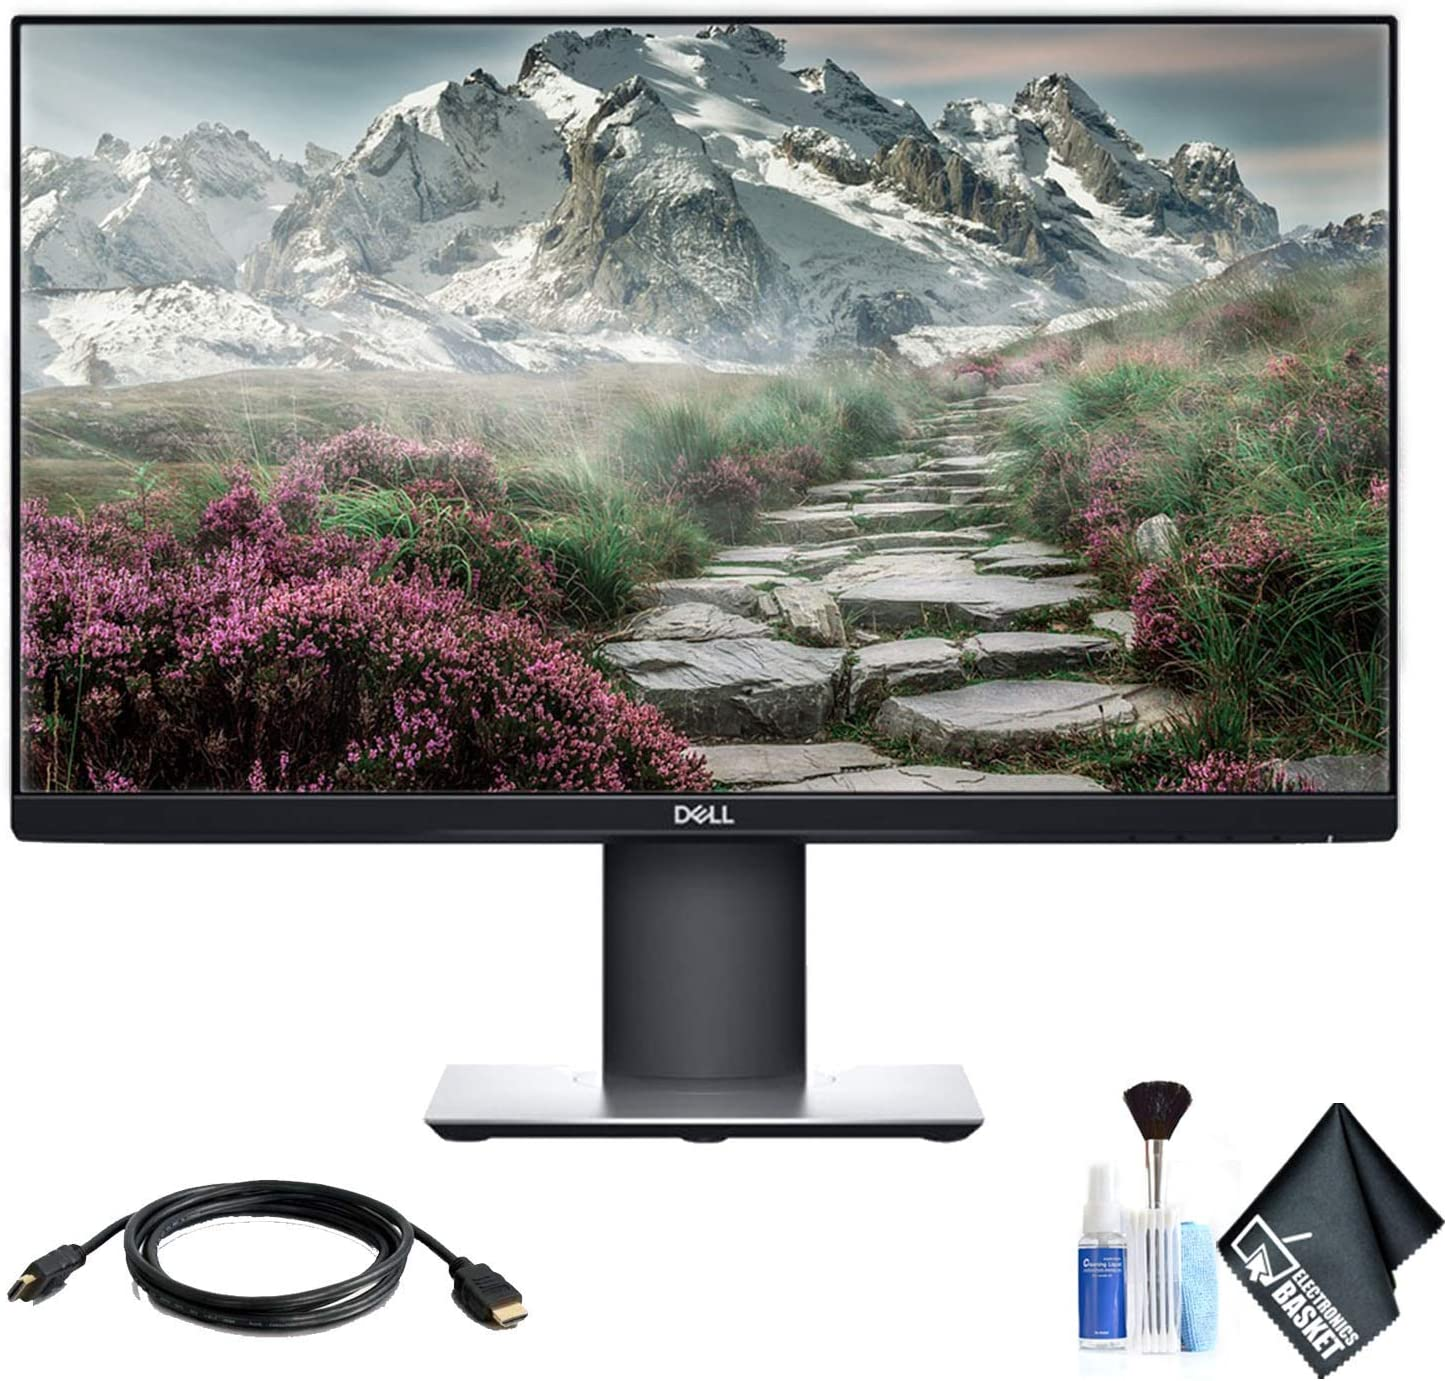 Dell P2319H 23 Inch 16:9 IPS Monitor and HDMI Cable